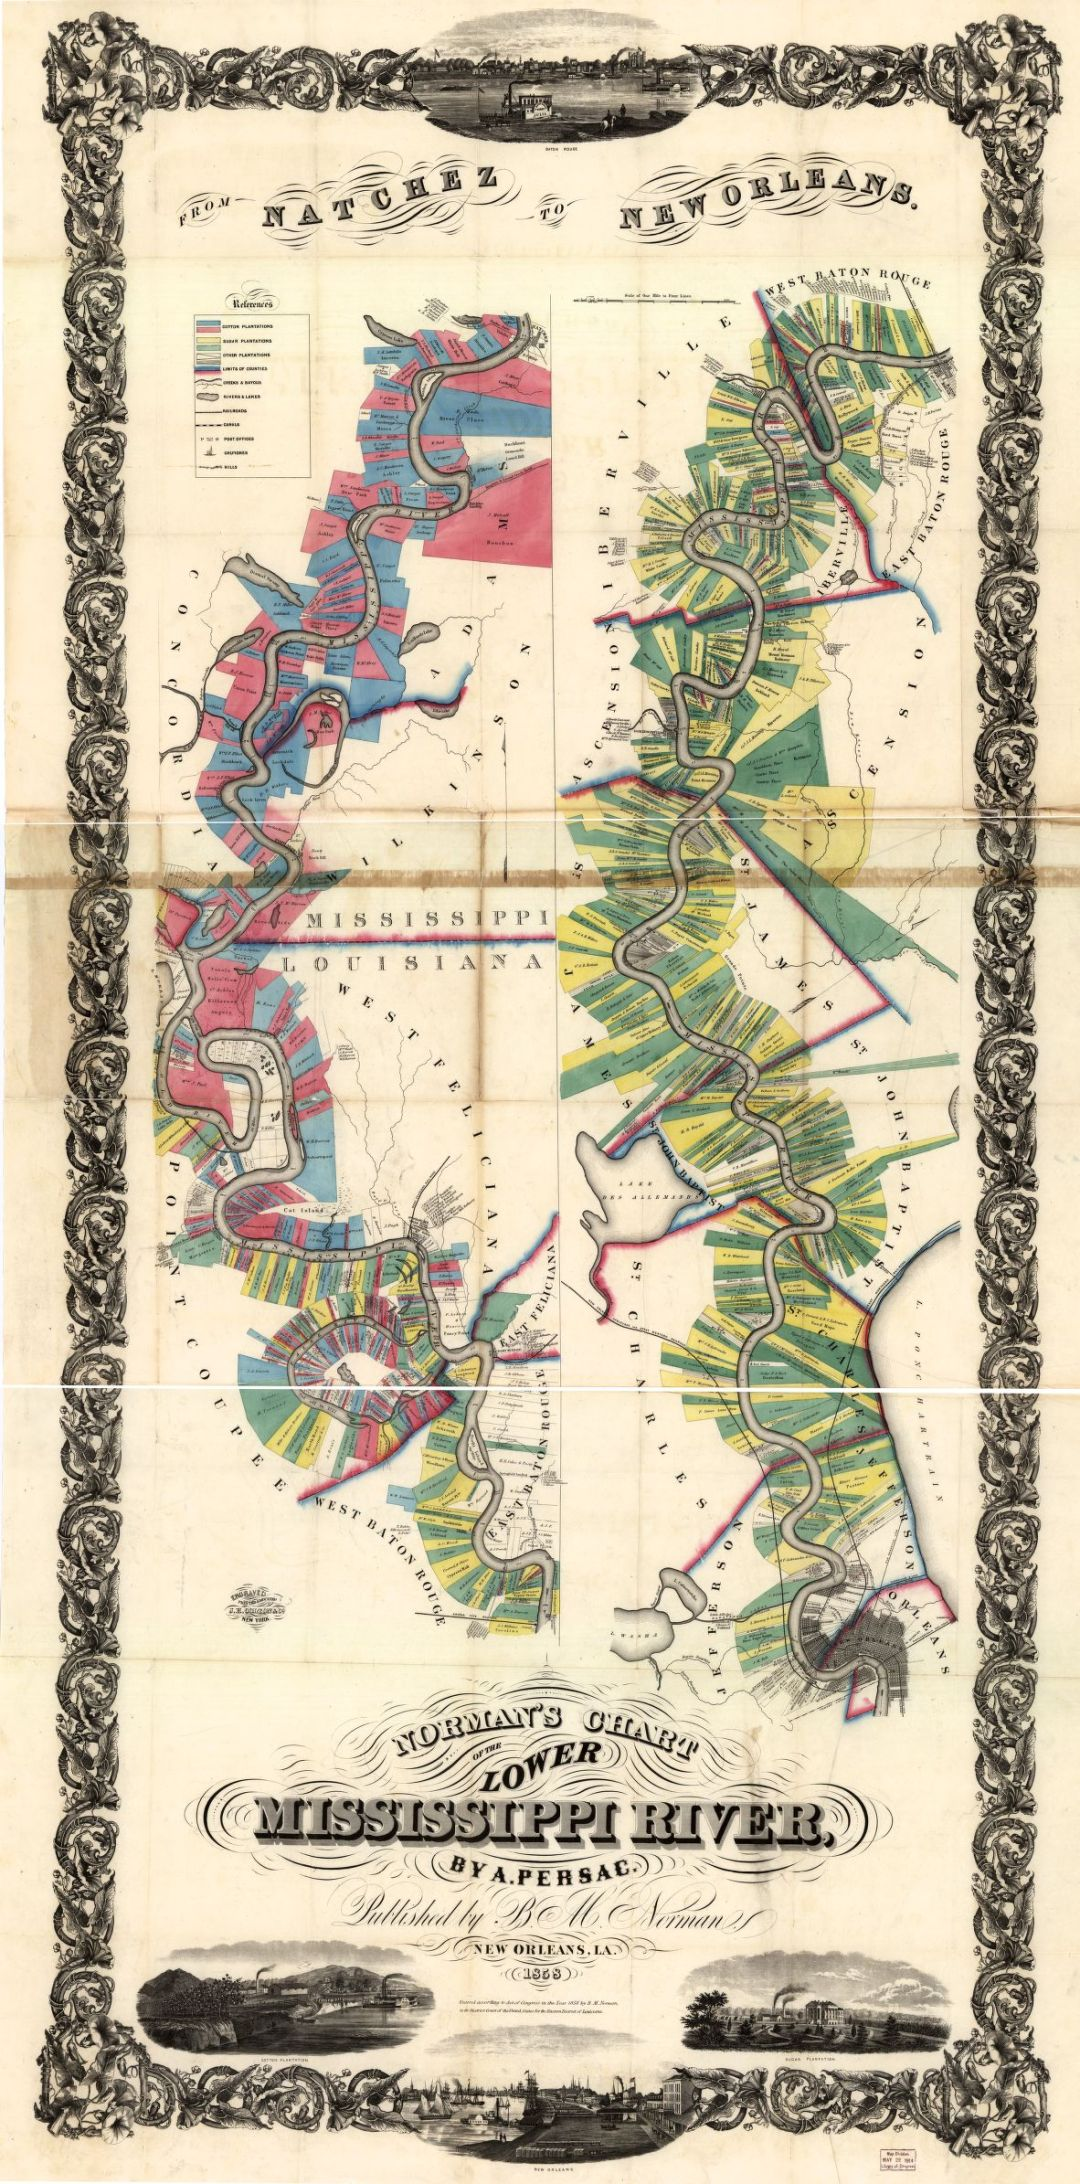 Normans Chart - Louisiana's River Road Plantations